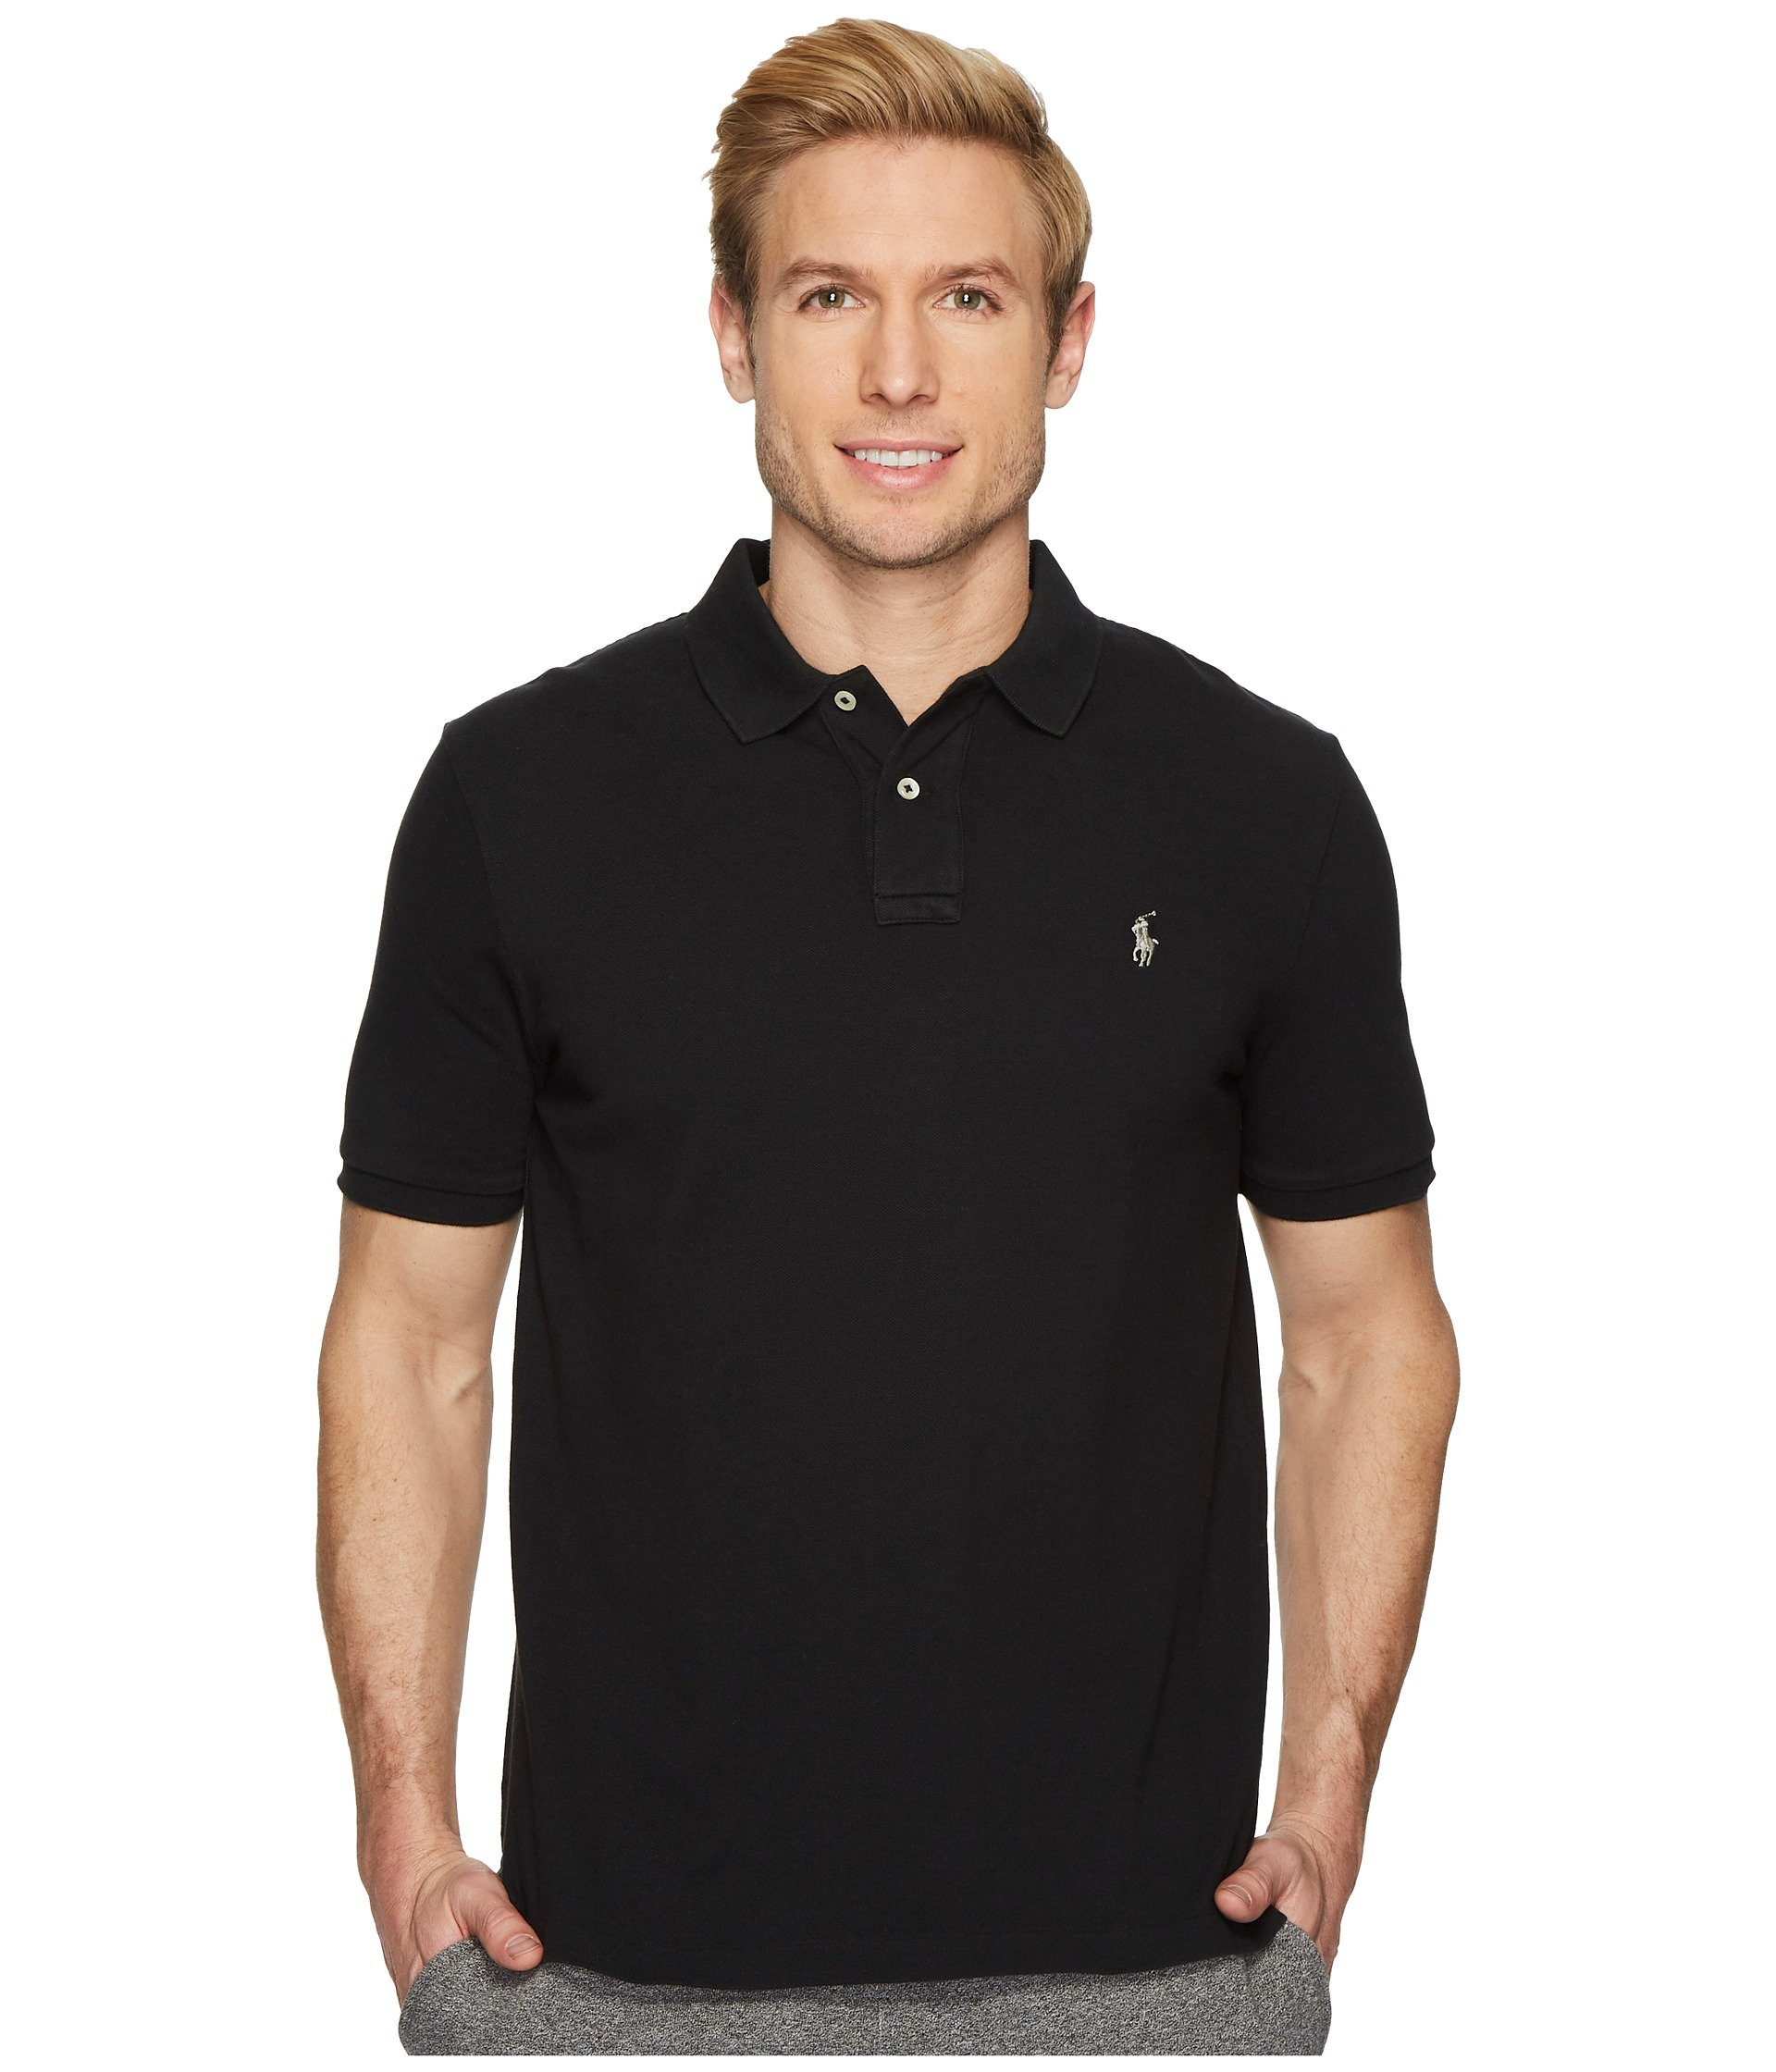 Polo Ralph Lauren Classic Fit Mesh Polo Black Size Small